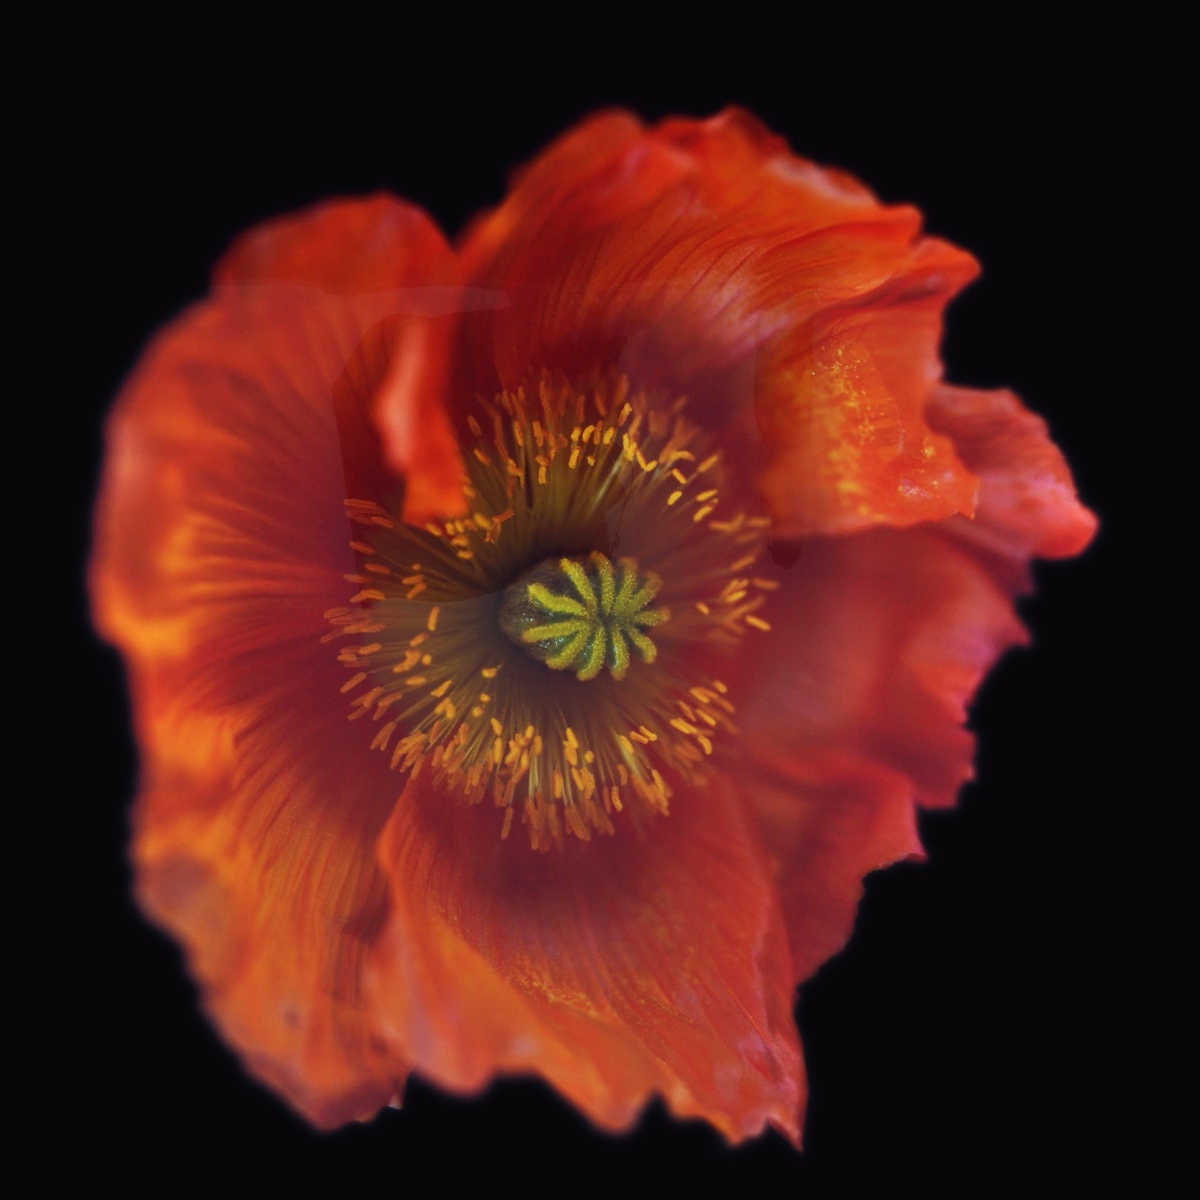 Rob and Nick Carter - RN1178, Icelandic Poppy, Orange, 2018 · © Copyright 2019